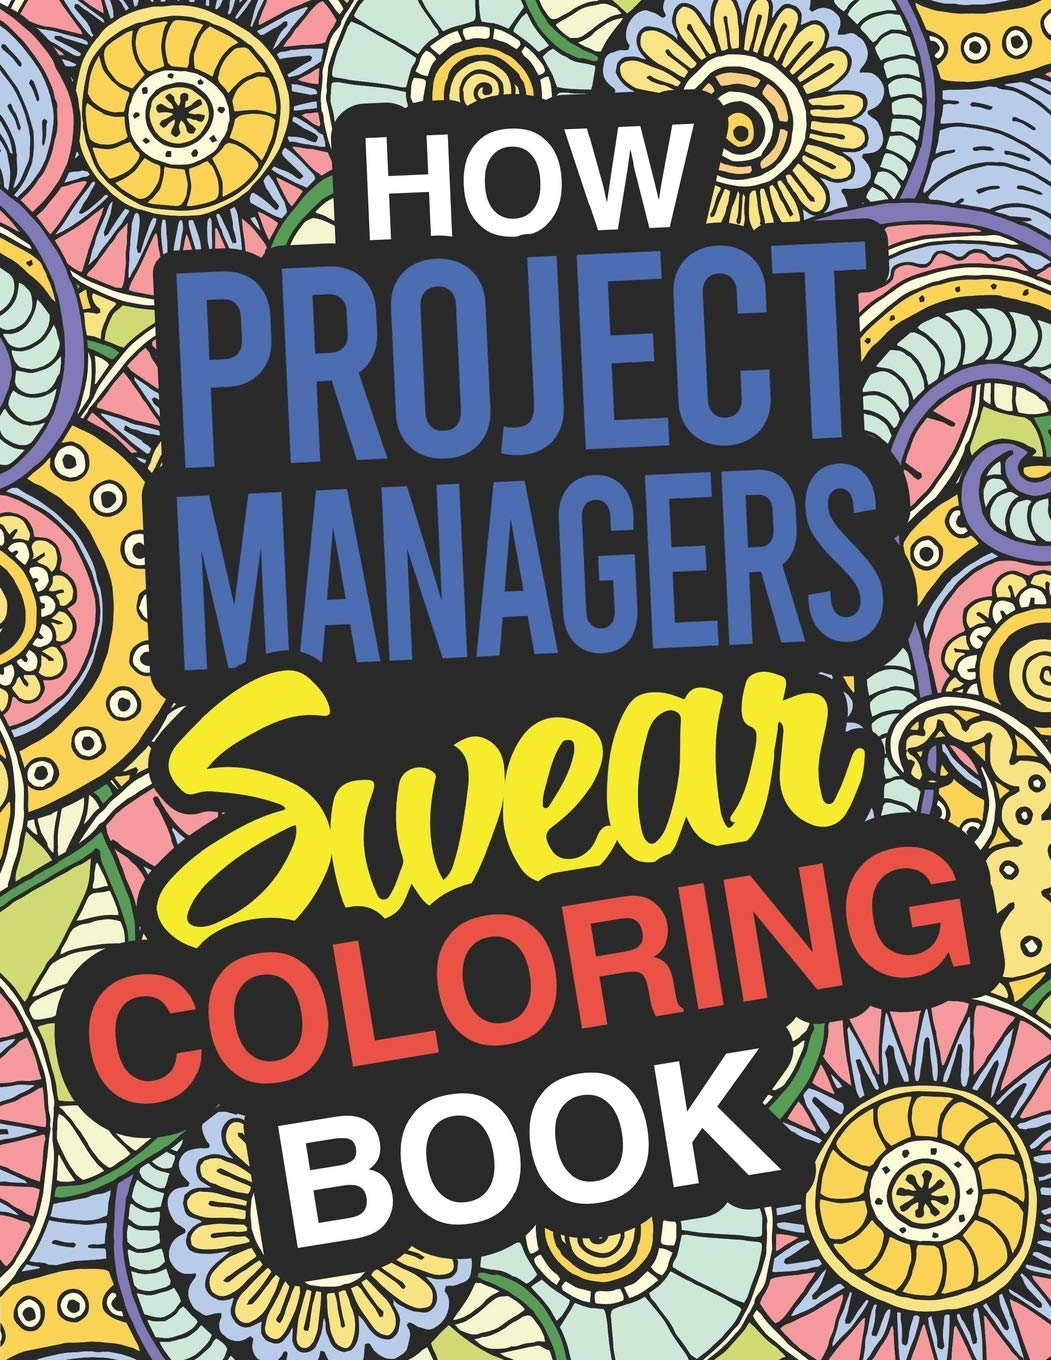 Amazon.com: How Project Managers Swear: Project Manager Coloring